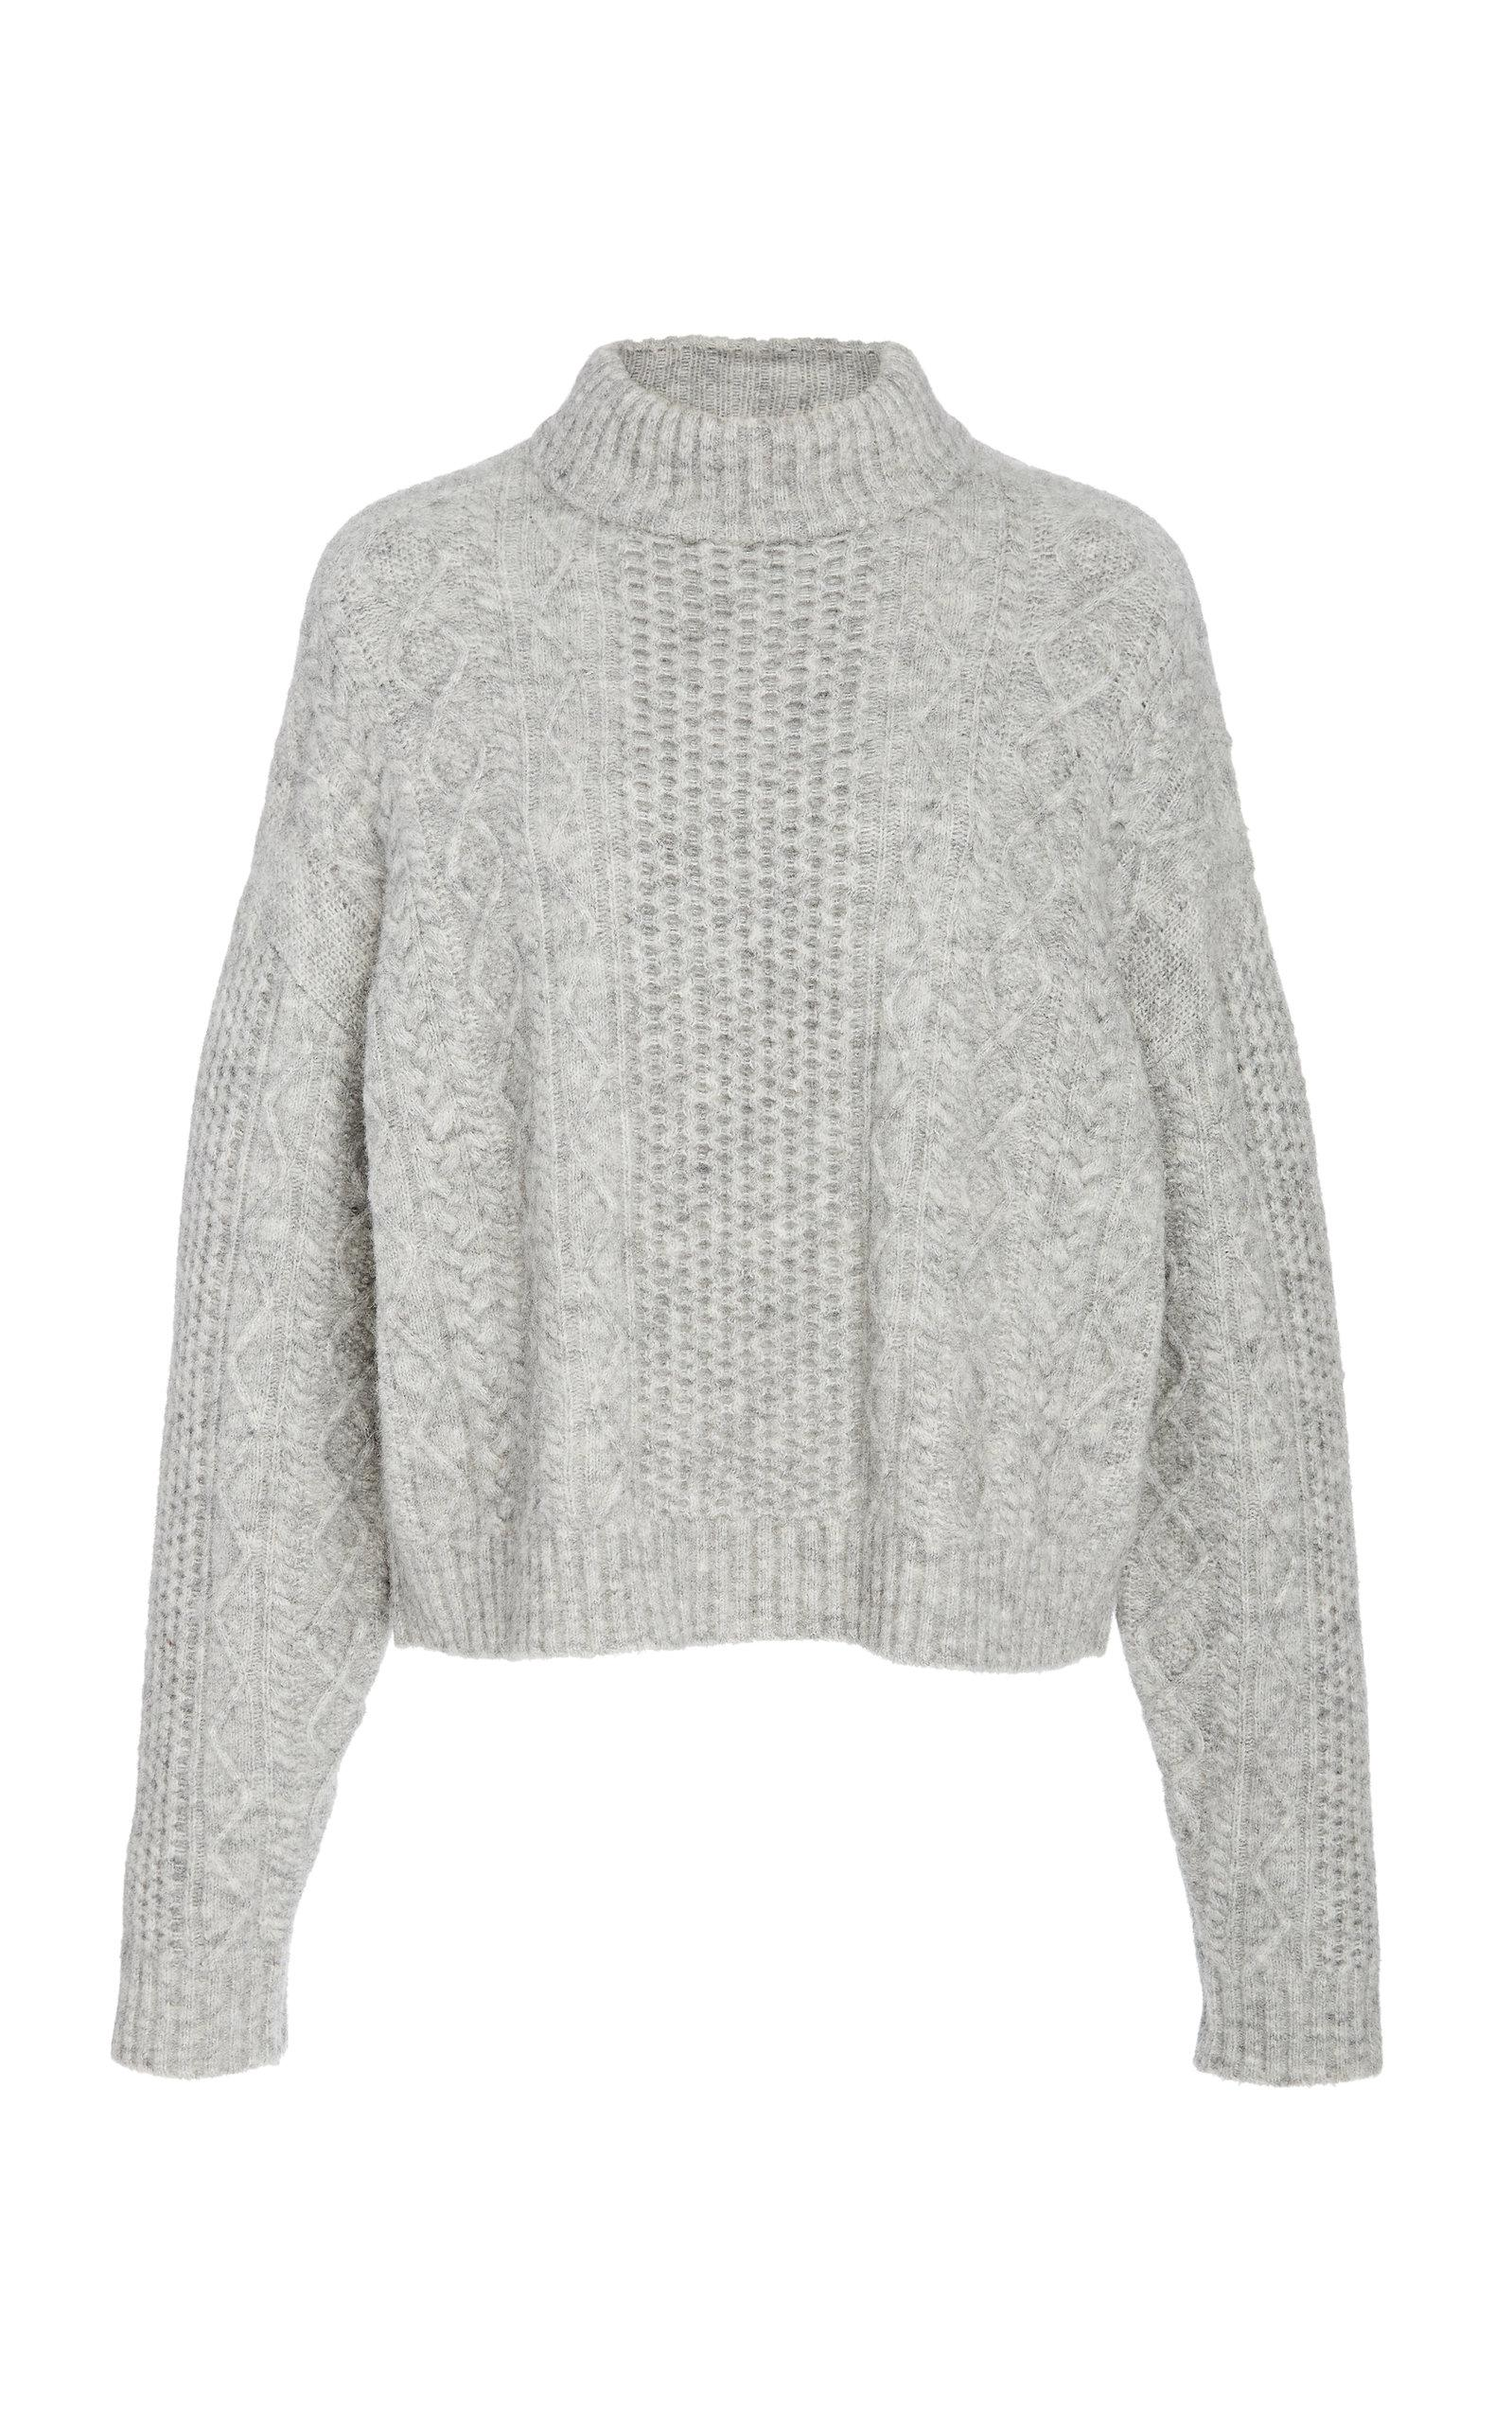 6c48273798d Lyst - Sally Lapointe Cable-knit Mock Neck Sweater in Gray